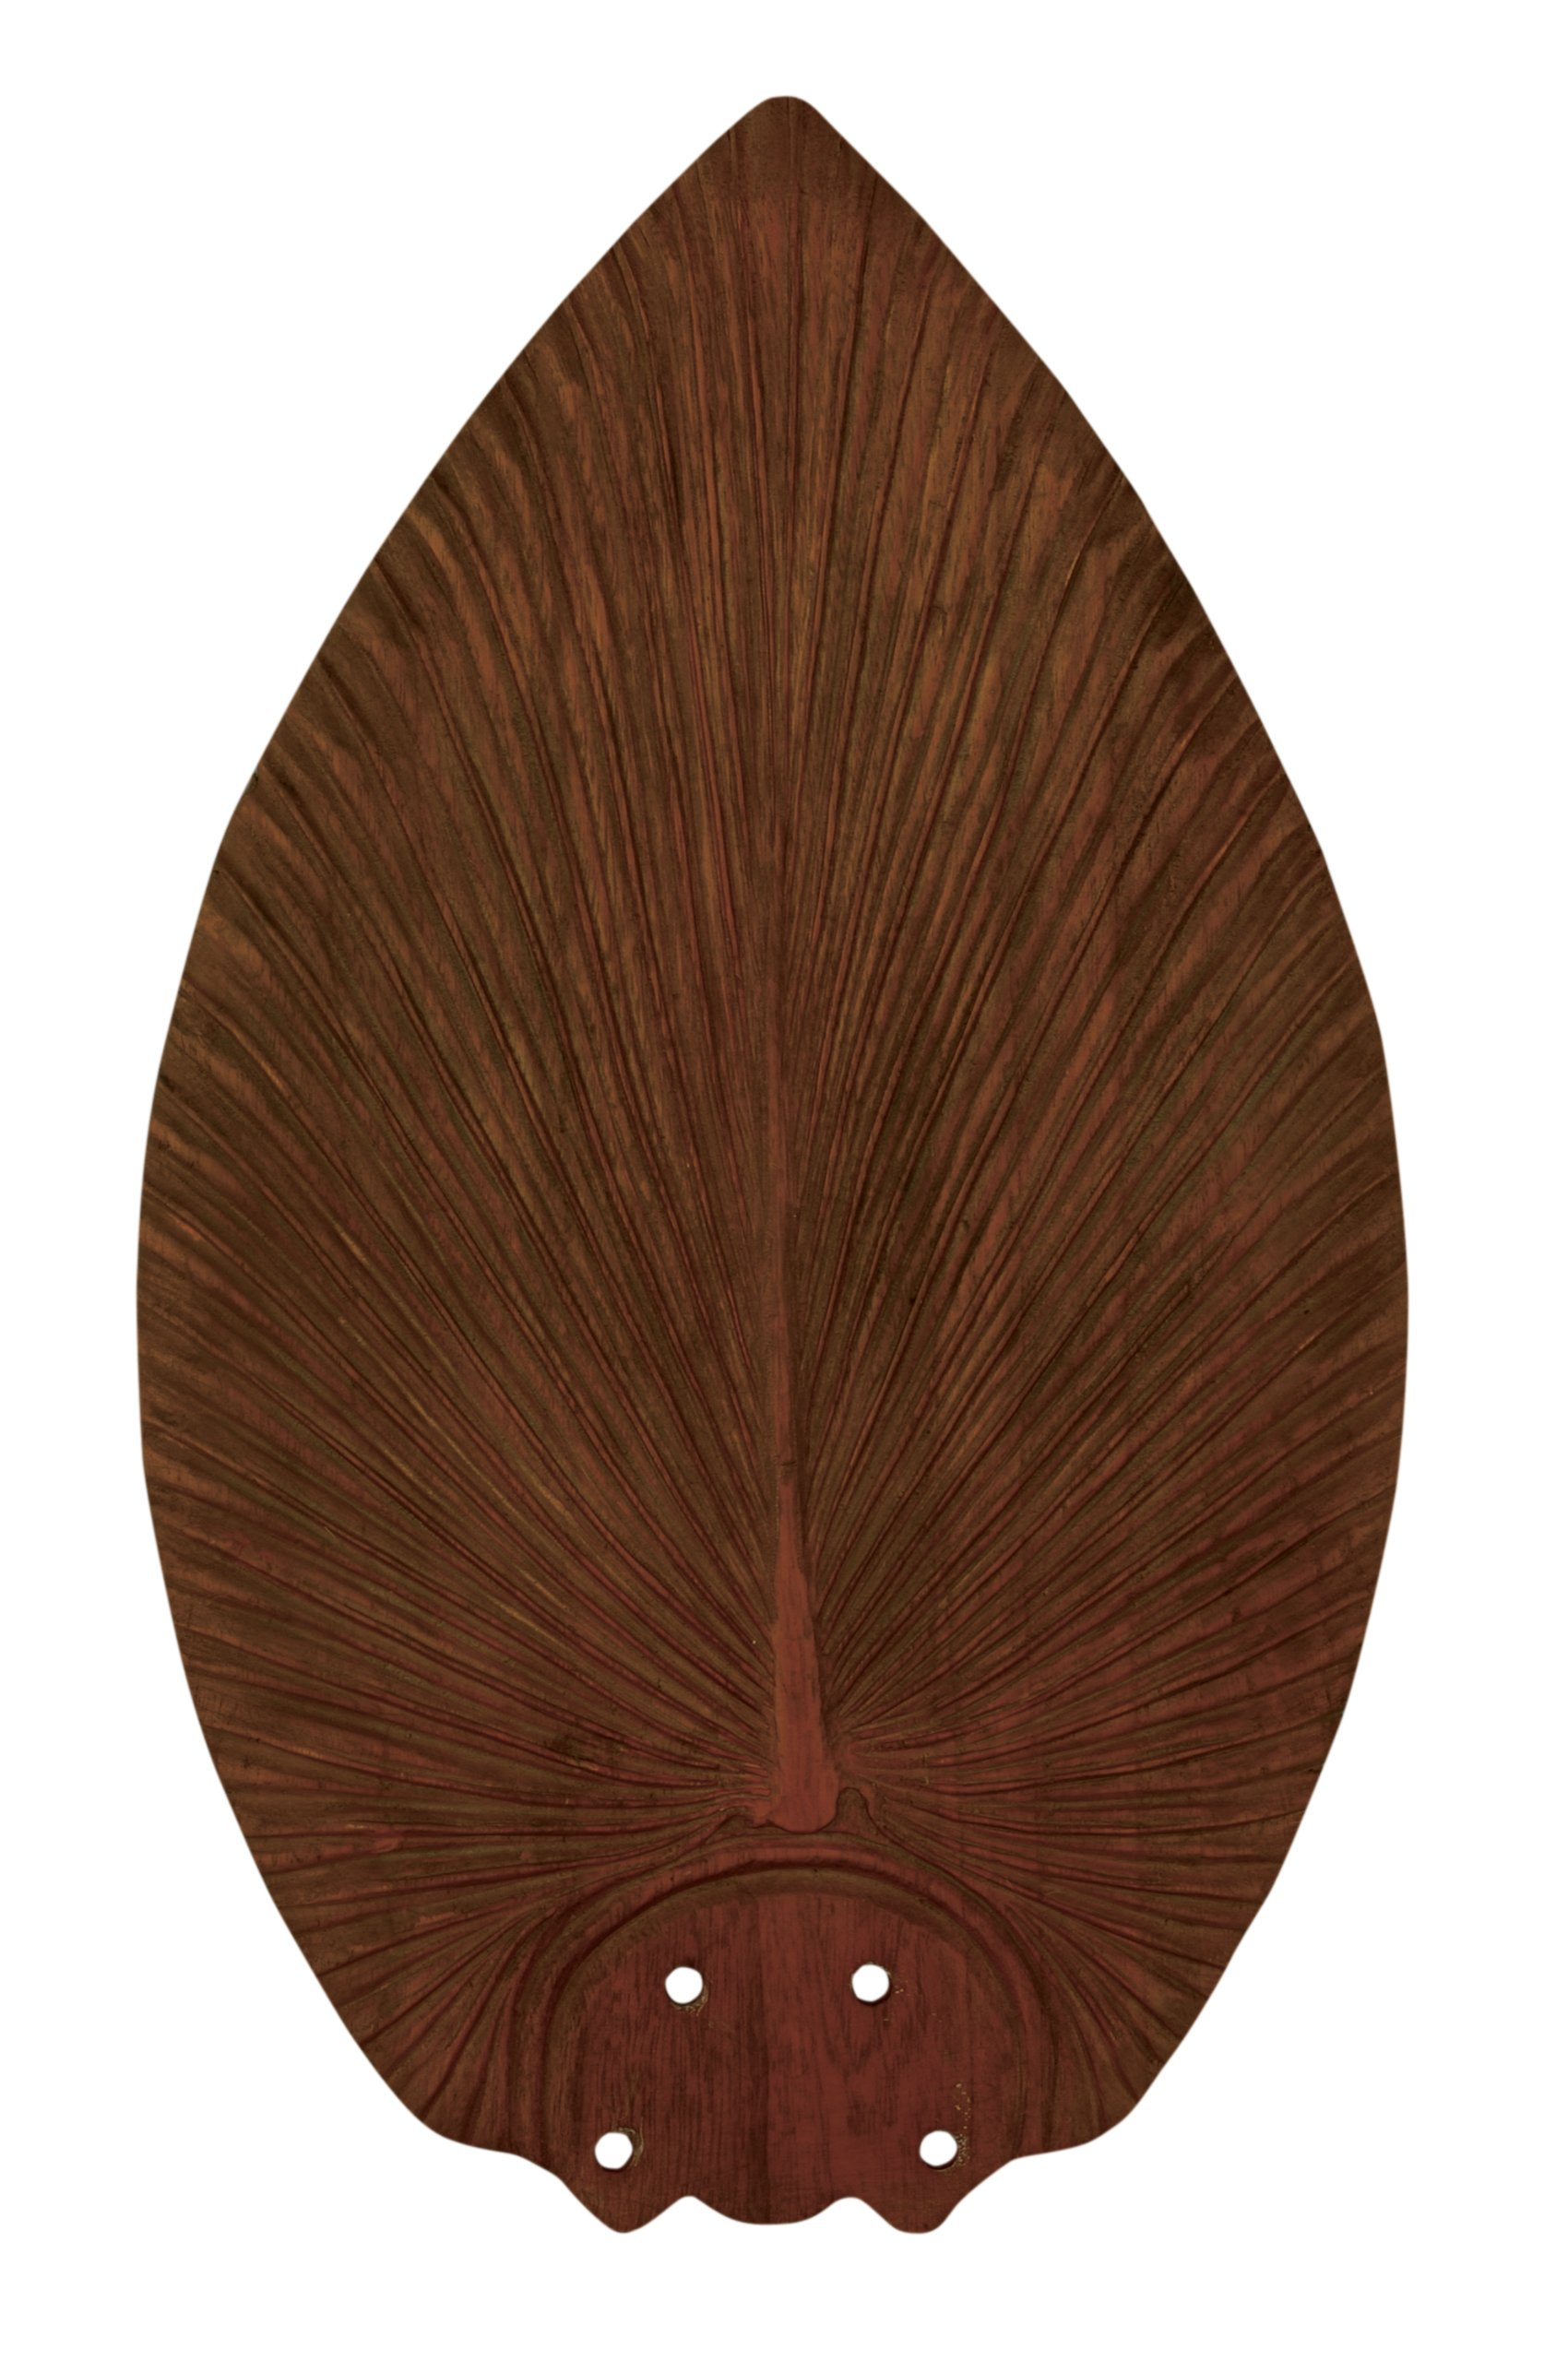 Emerson Ceiling Fans TB540DM Tommy Bahama Blades Ceiling Fan Blades, Dark Mahogany, Indoor by Tommy Bahama